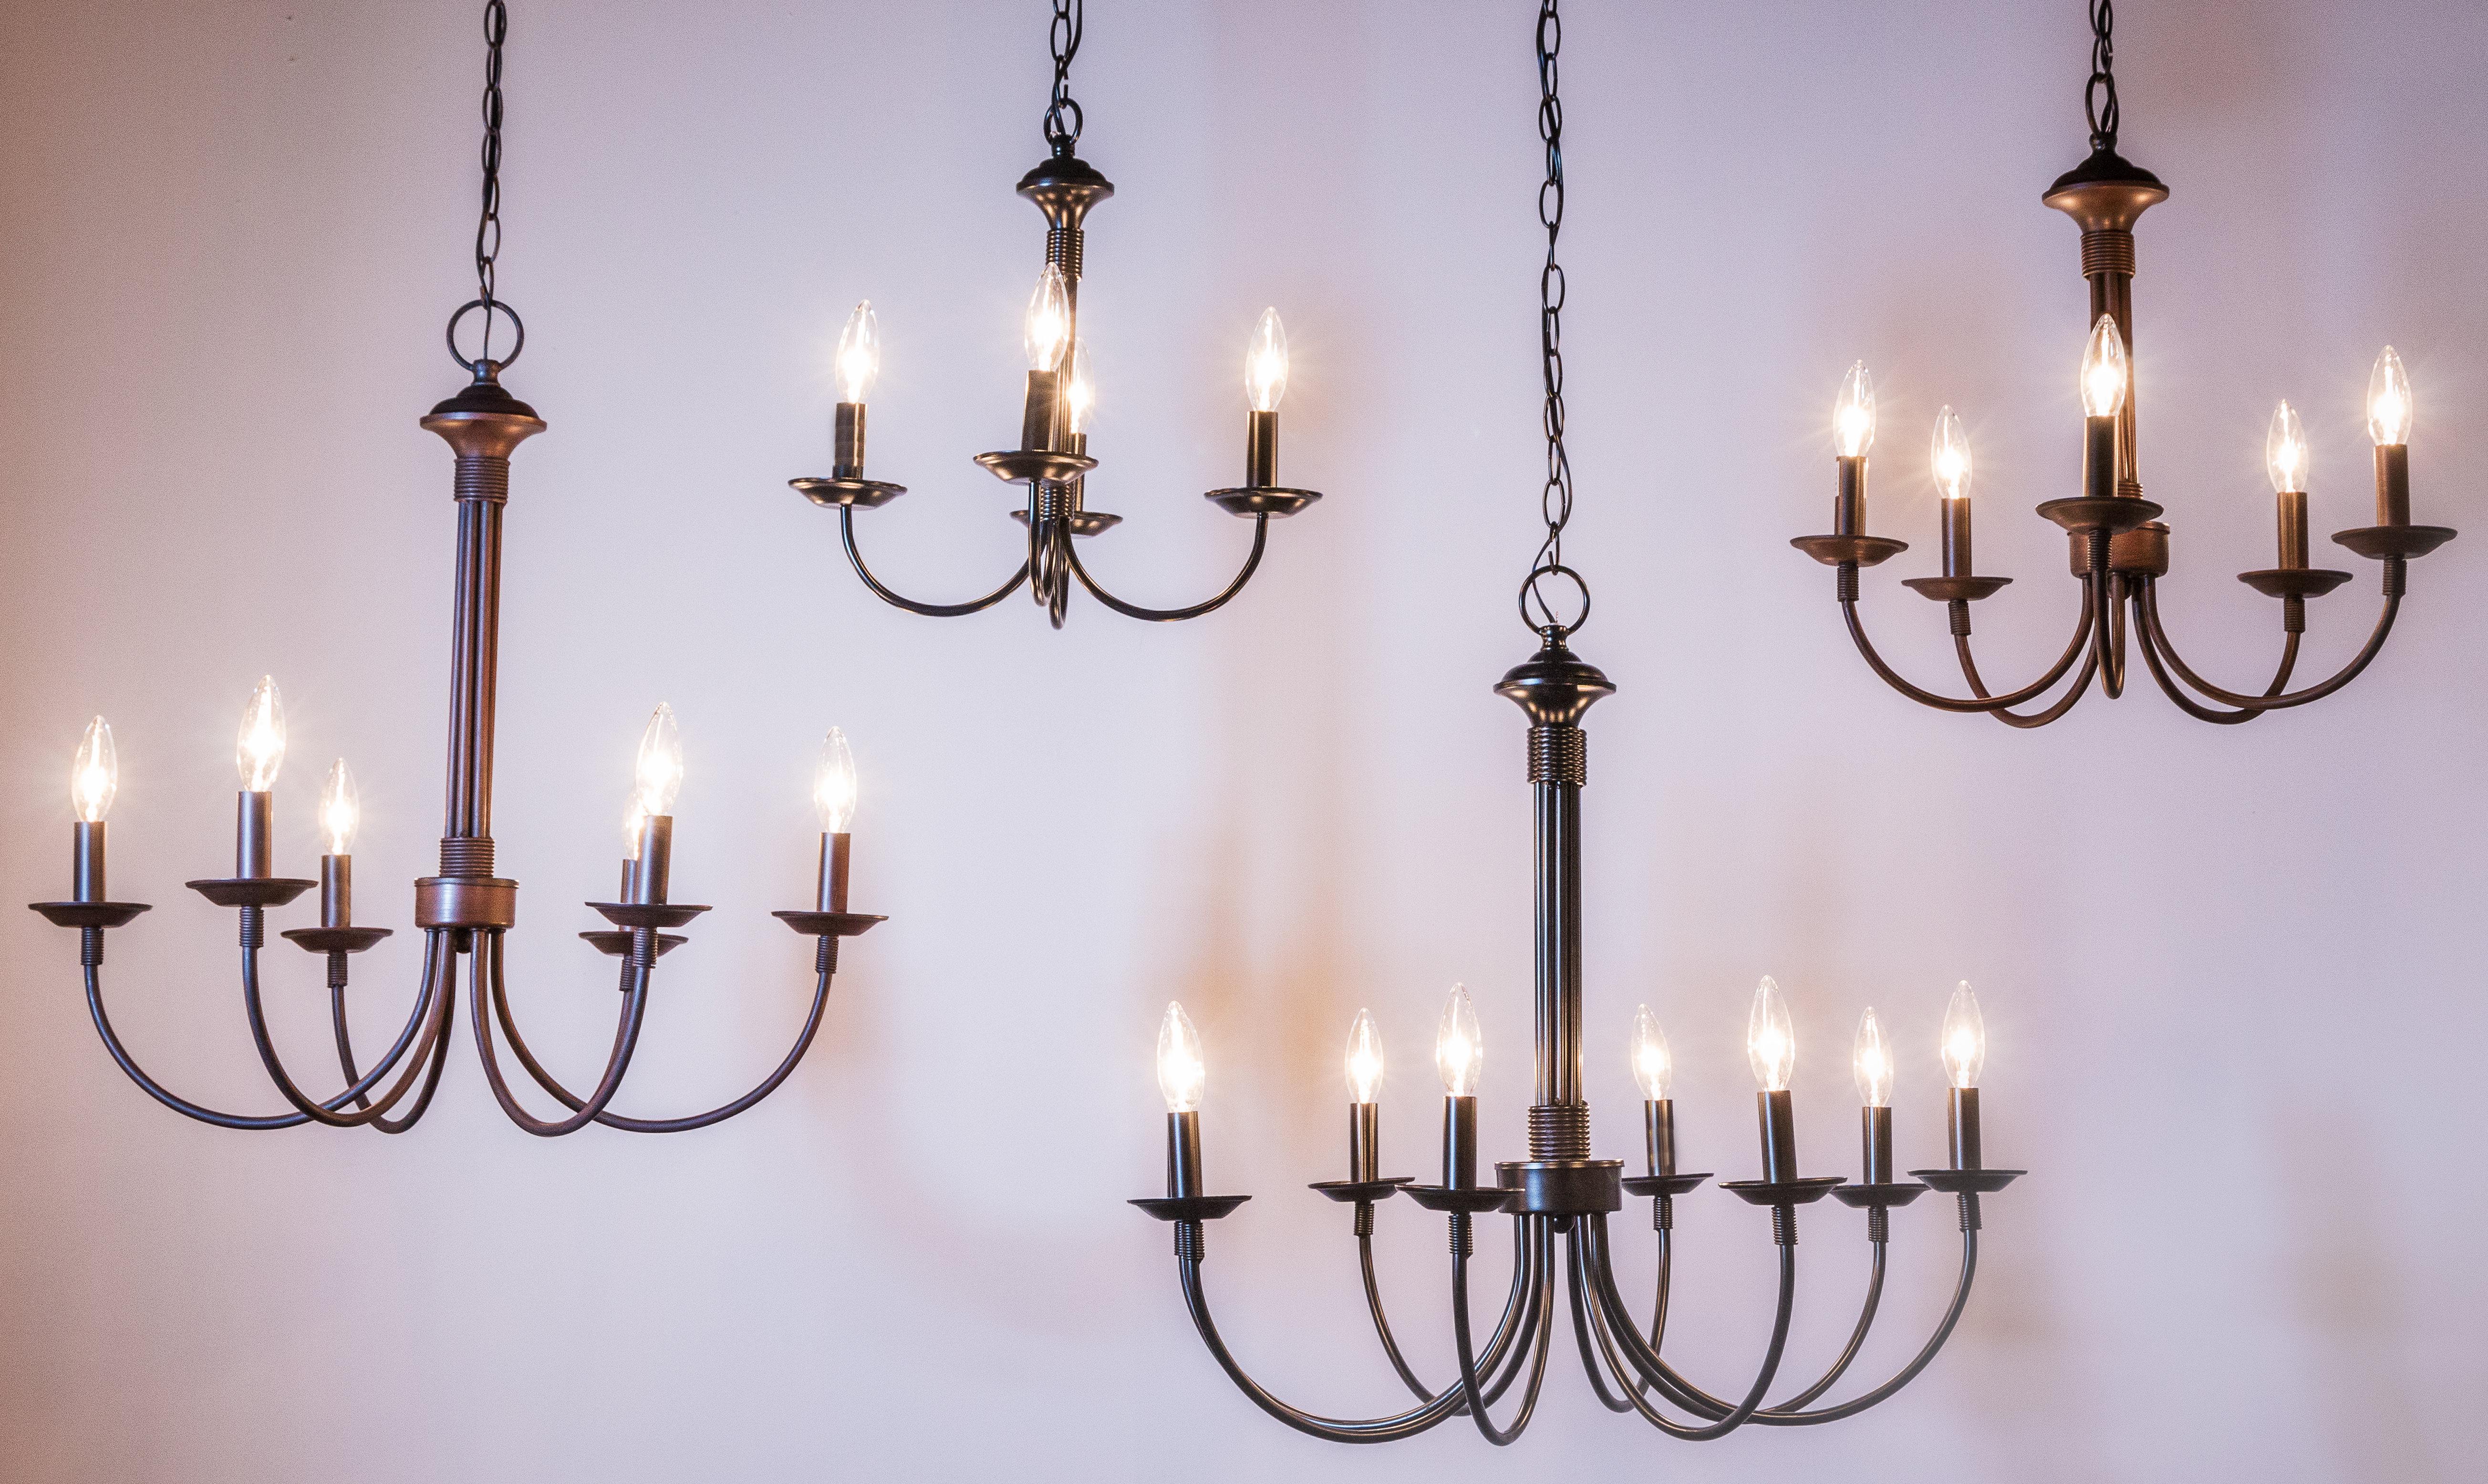 2019 Shaylee 5 Light Candle Style Chandelier Regarding Shaylee 8 Light Candle Style Chandeliers (View 2 of 25)